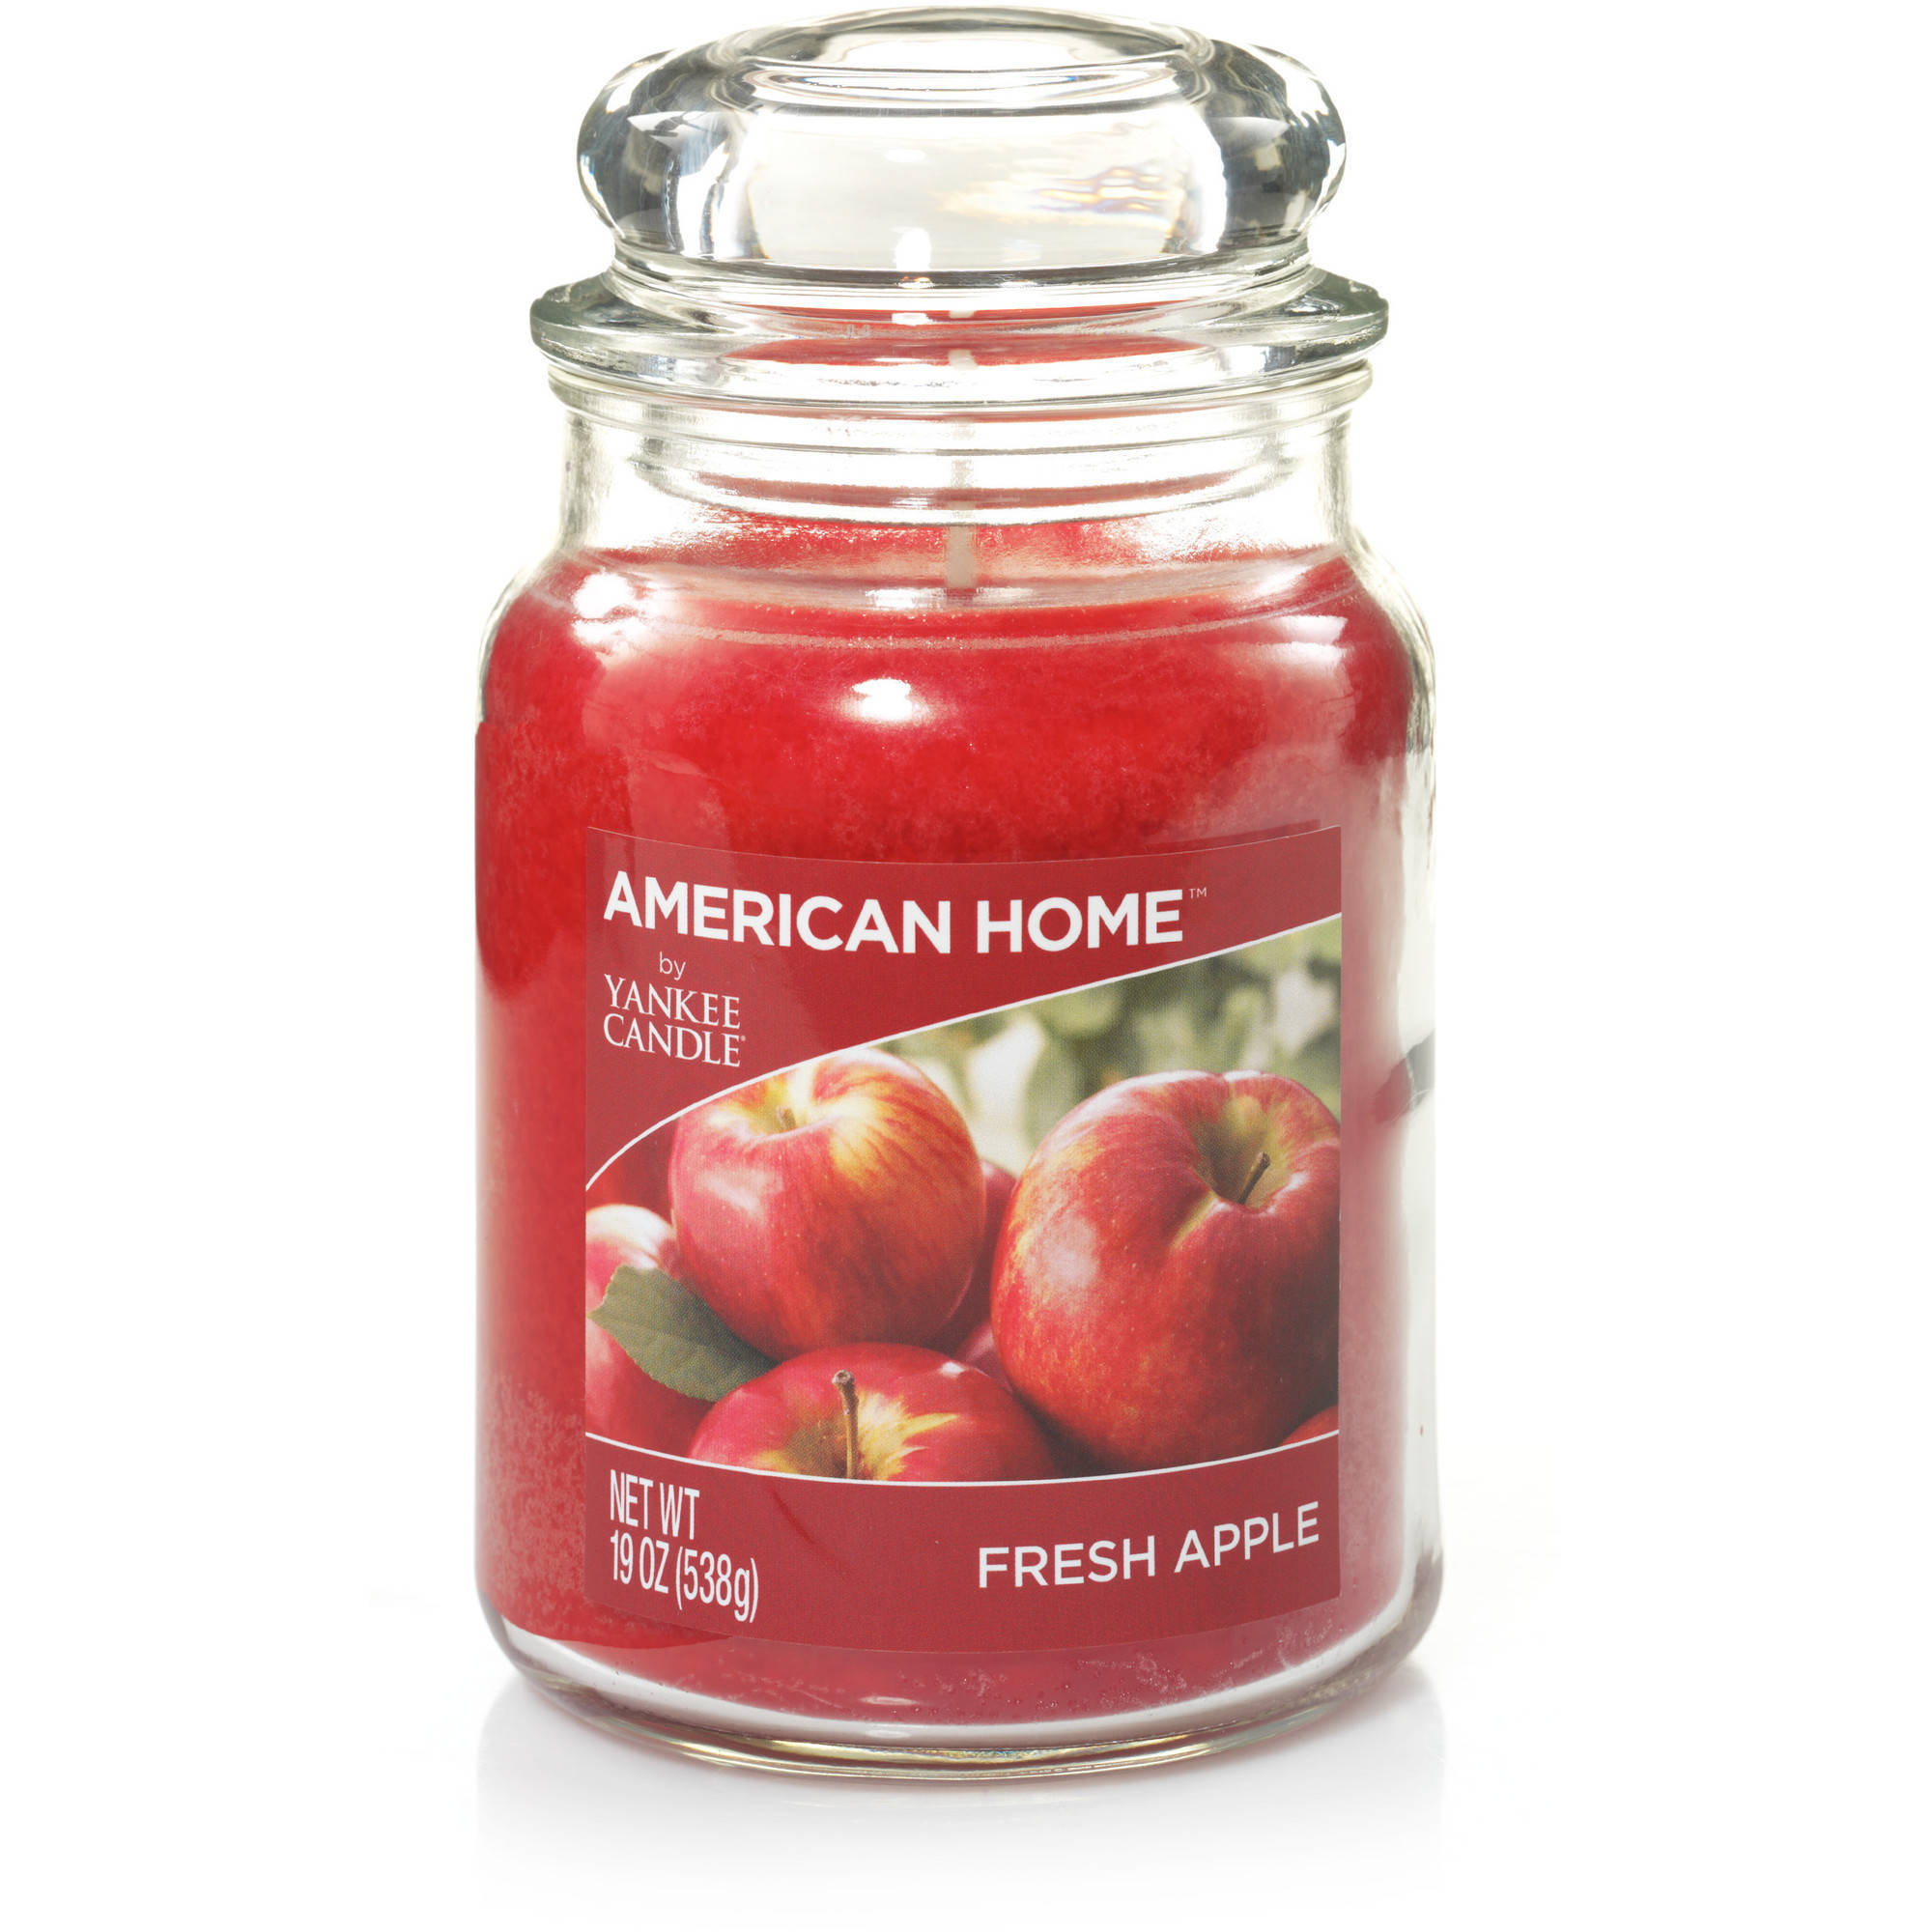 American Home By Yankee Candle Fresh Apple, 19 Oz Large